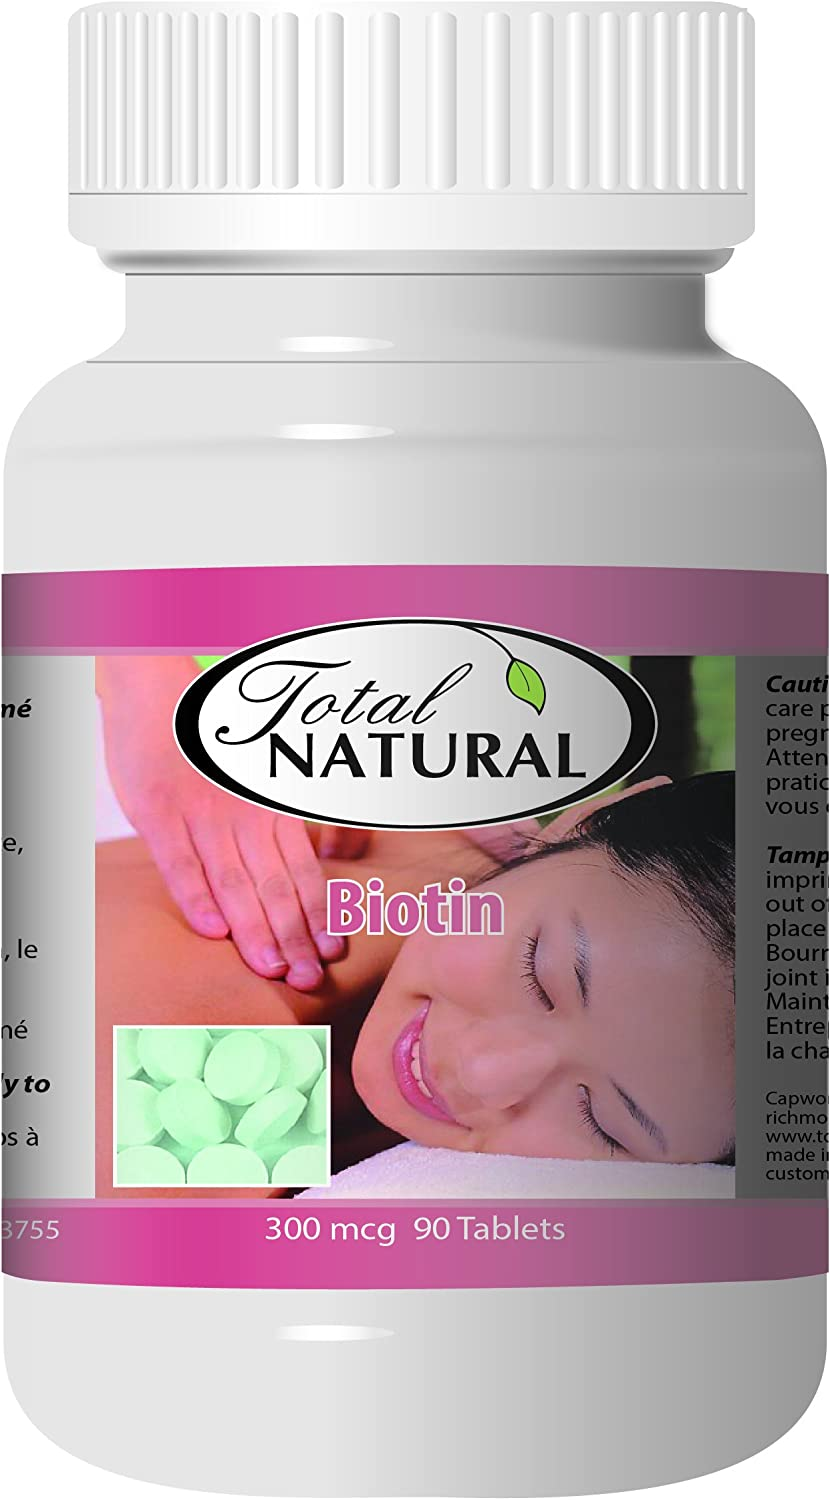 Biotin 300mcg 90t 12 Bottles by Nail Care Total Fixed price for sale Natural Max 45% OFF Skin